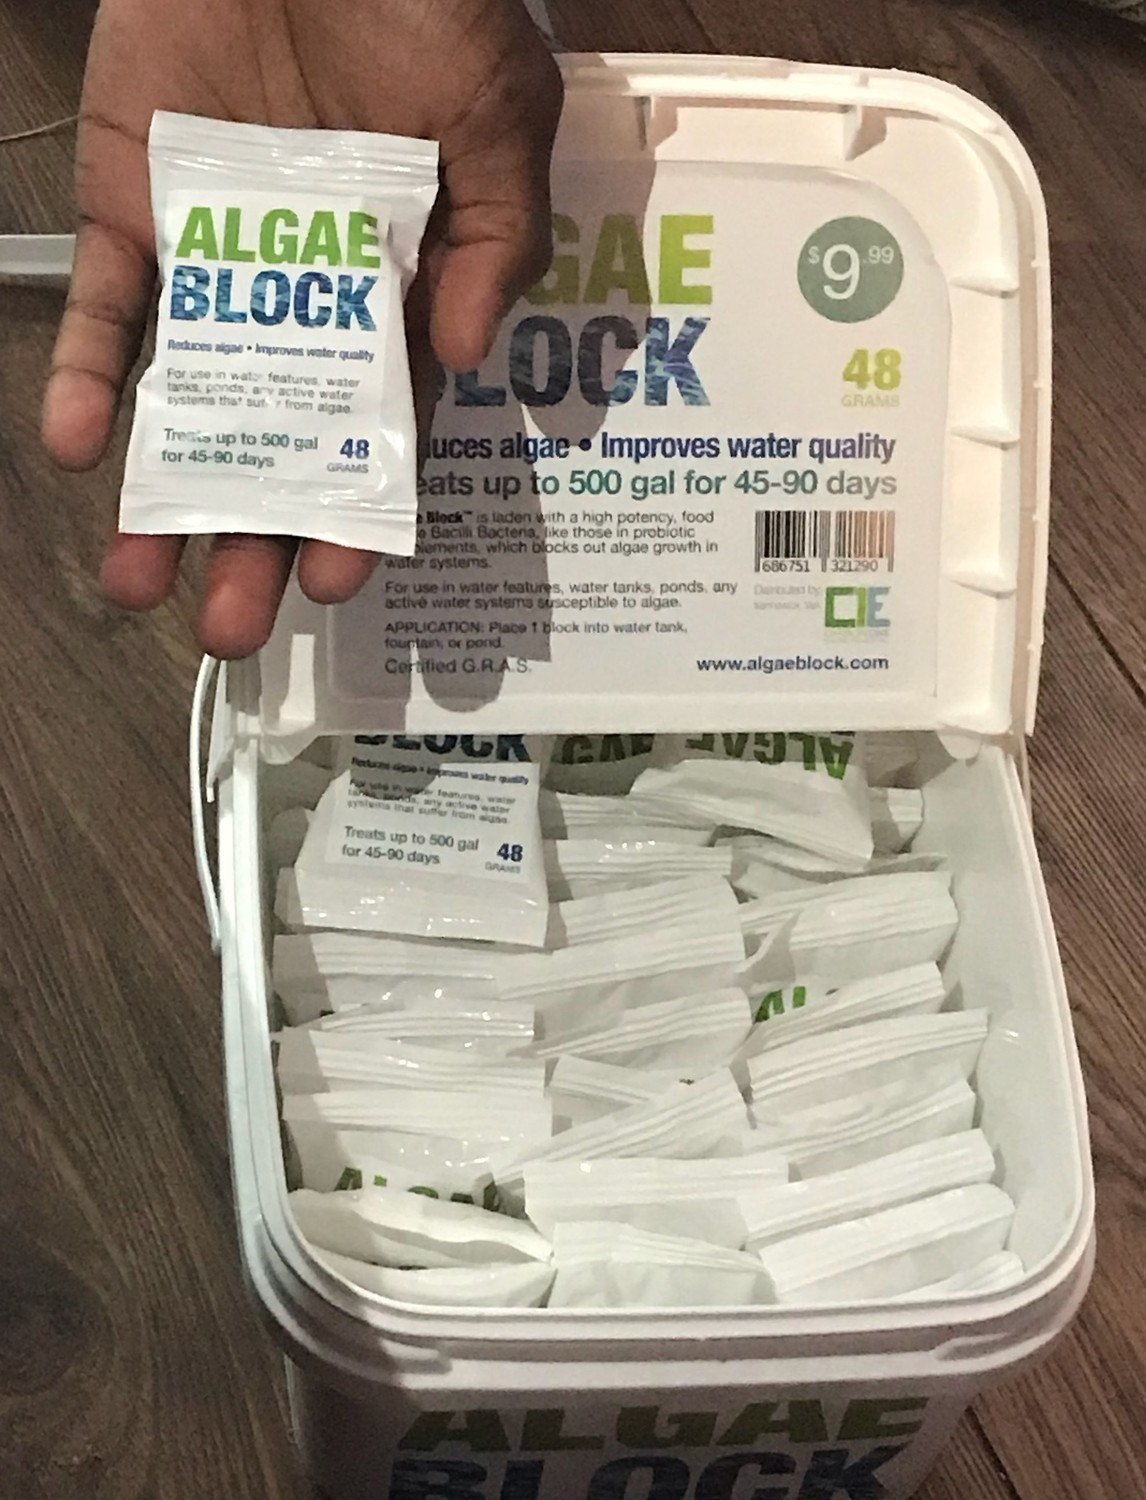 LGAE BLOCK 48 GRAMS  TREATS UP TO 500 GALLONS FOR 45-90 DAYS